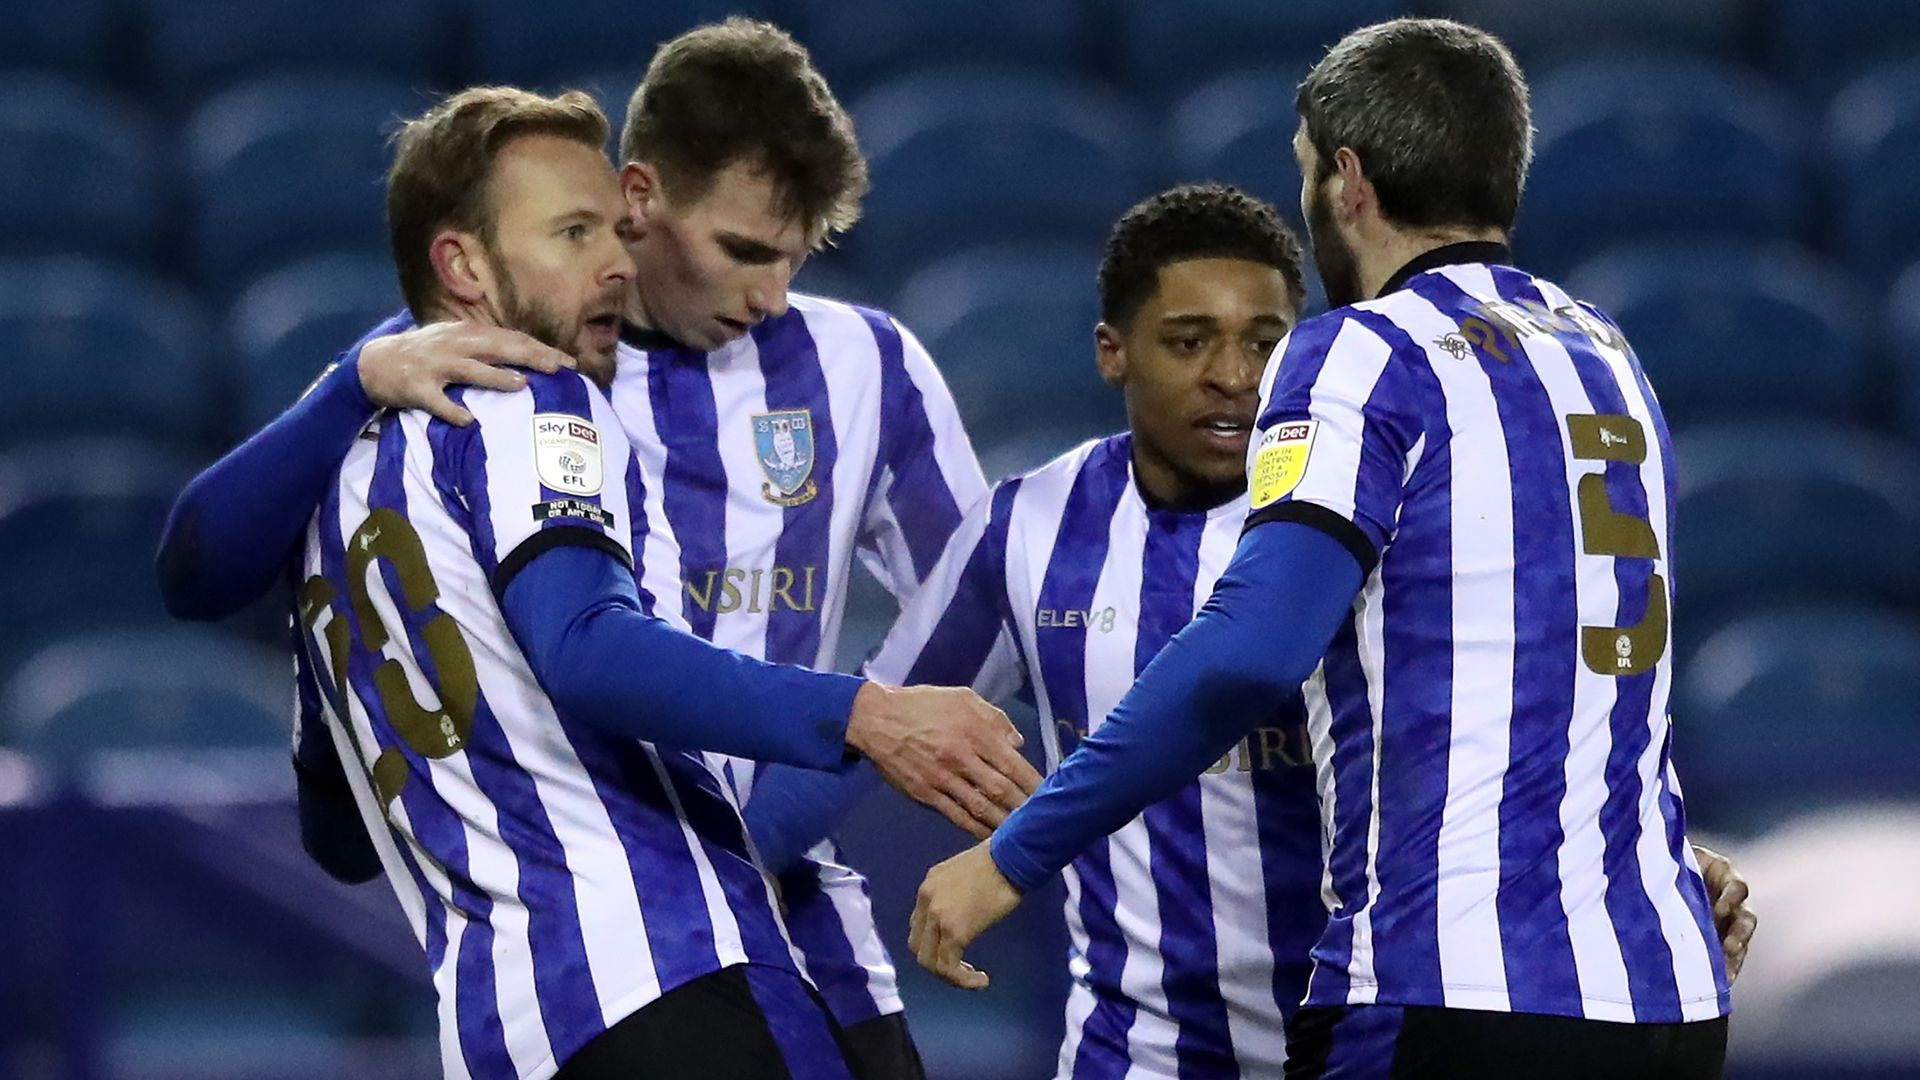 Sheff Wed win to climb out of relegation zone